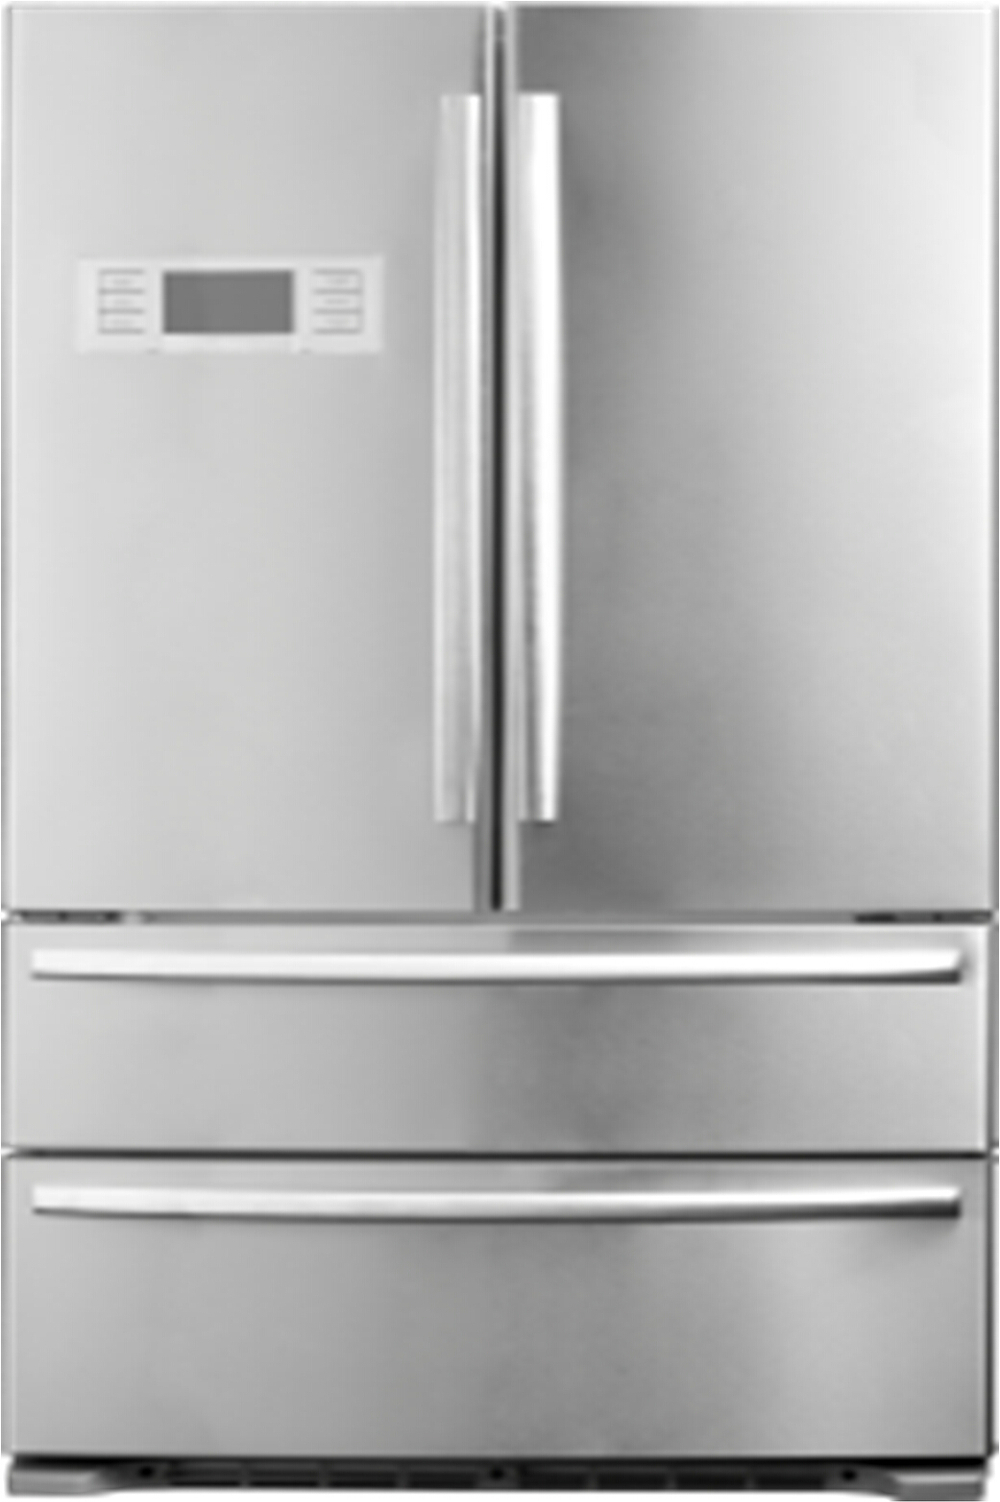 Hc767we No Frost French Door Refrigerator With Ice Maker Dual Cycle